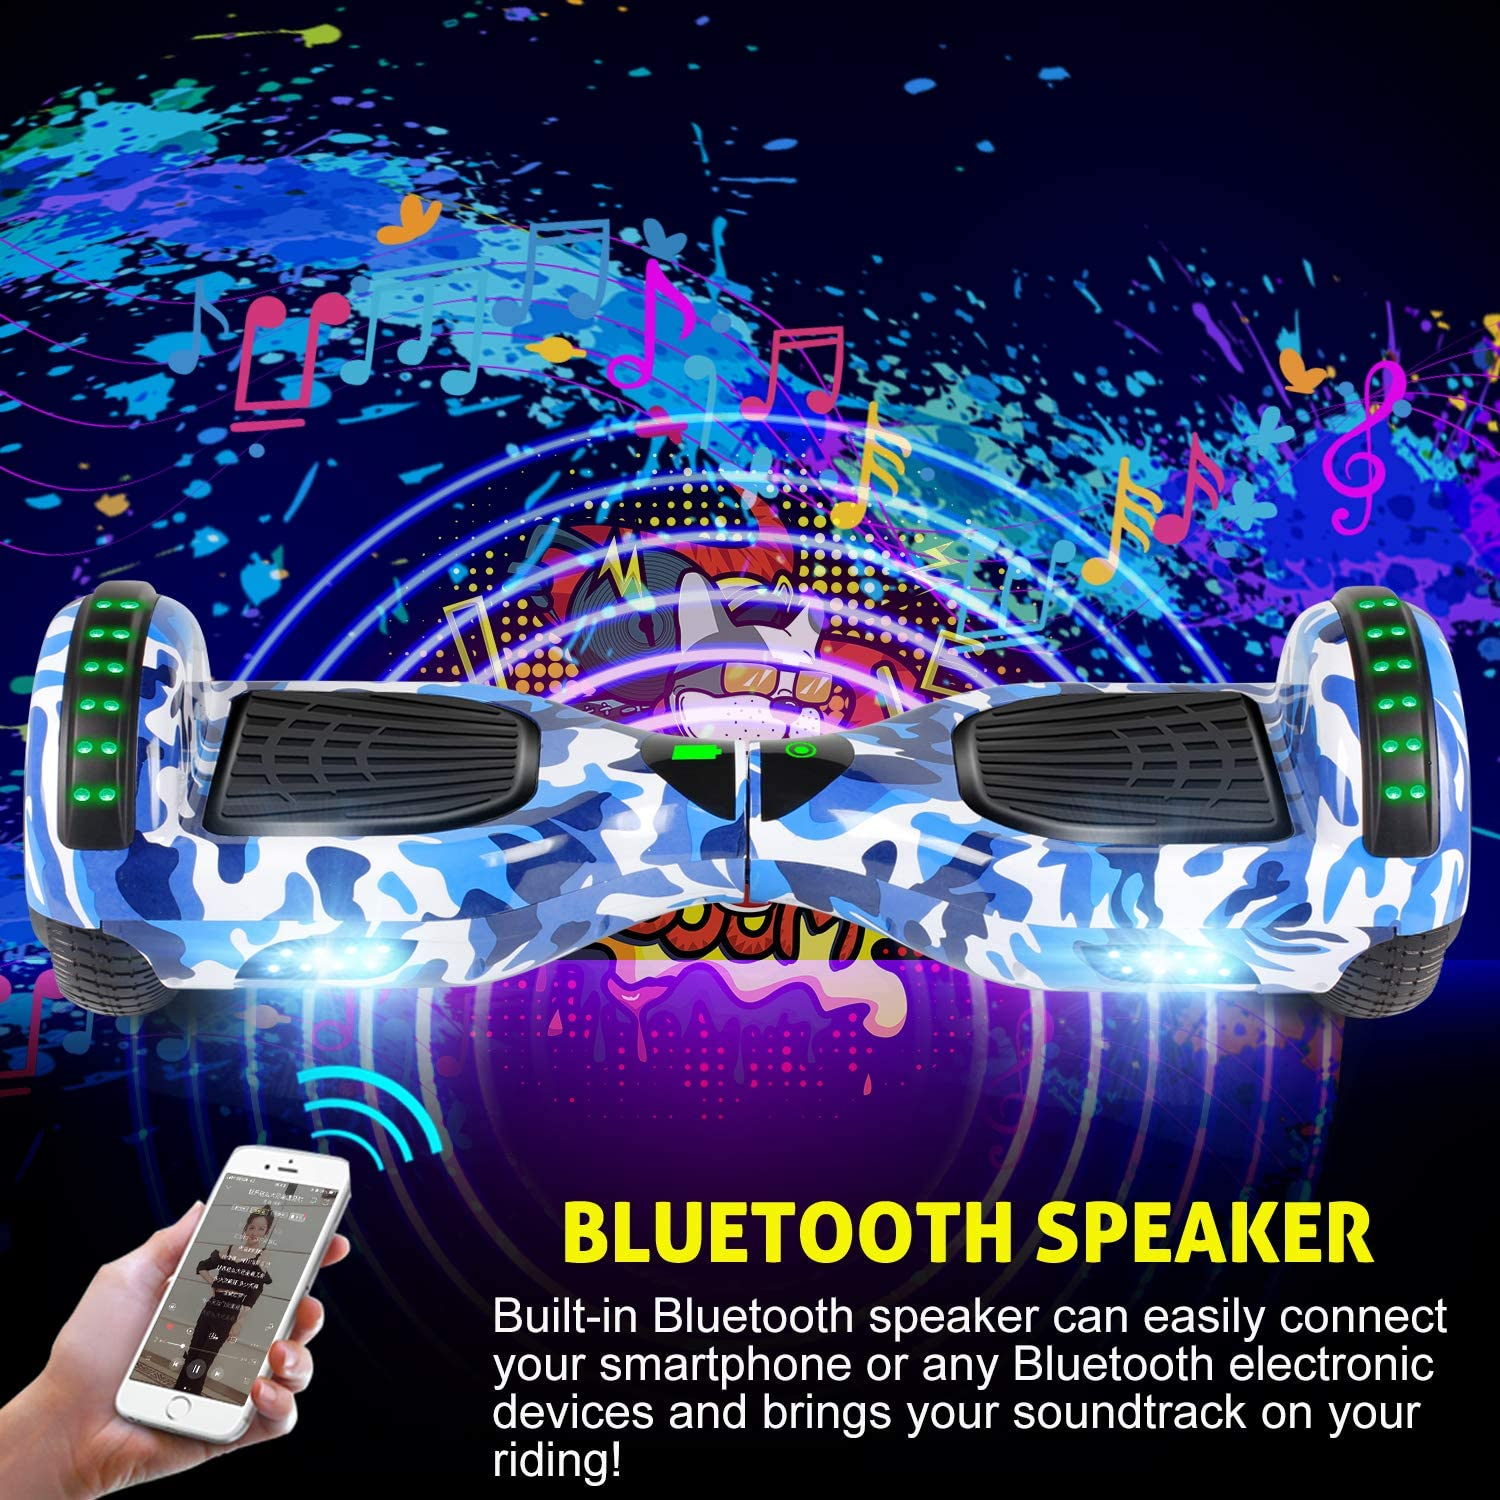 YHR Hoverboard 6.5 Two-Wheel Self Balancing Hover Board with Bluetooth Speaker and LED Lights Hoverboard for Kids and Adults